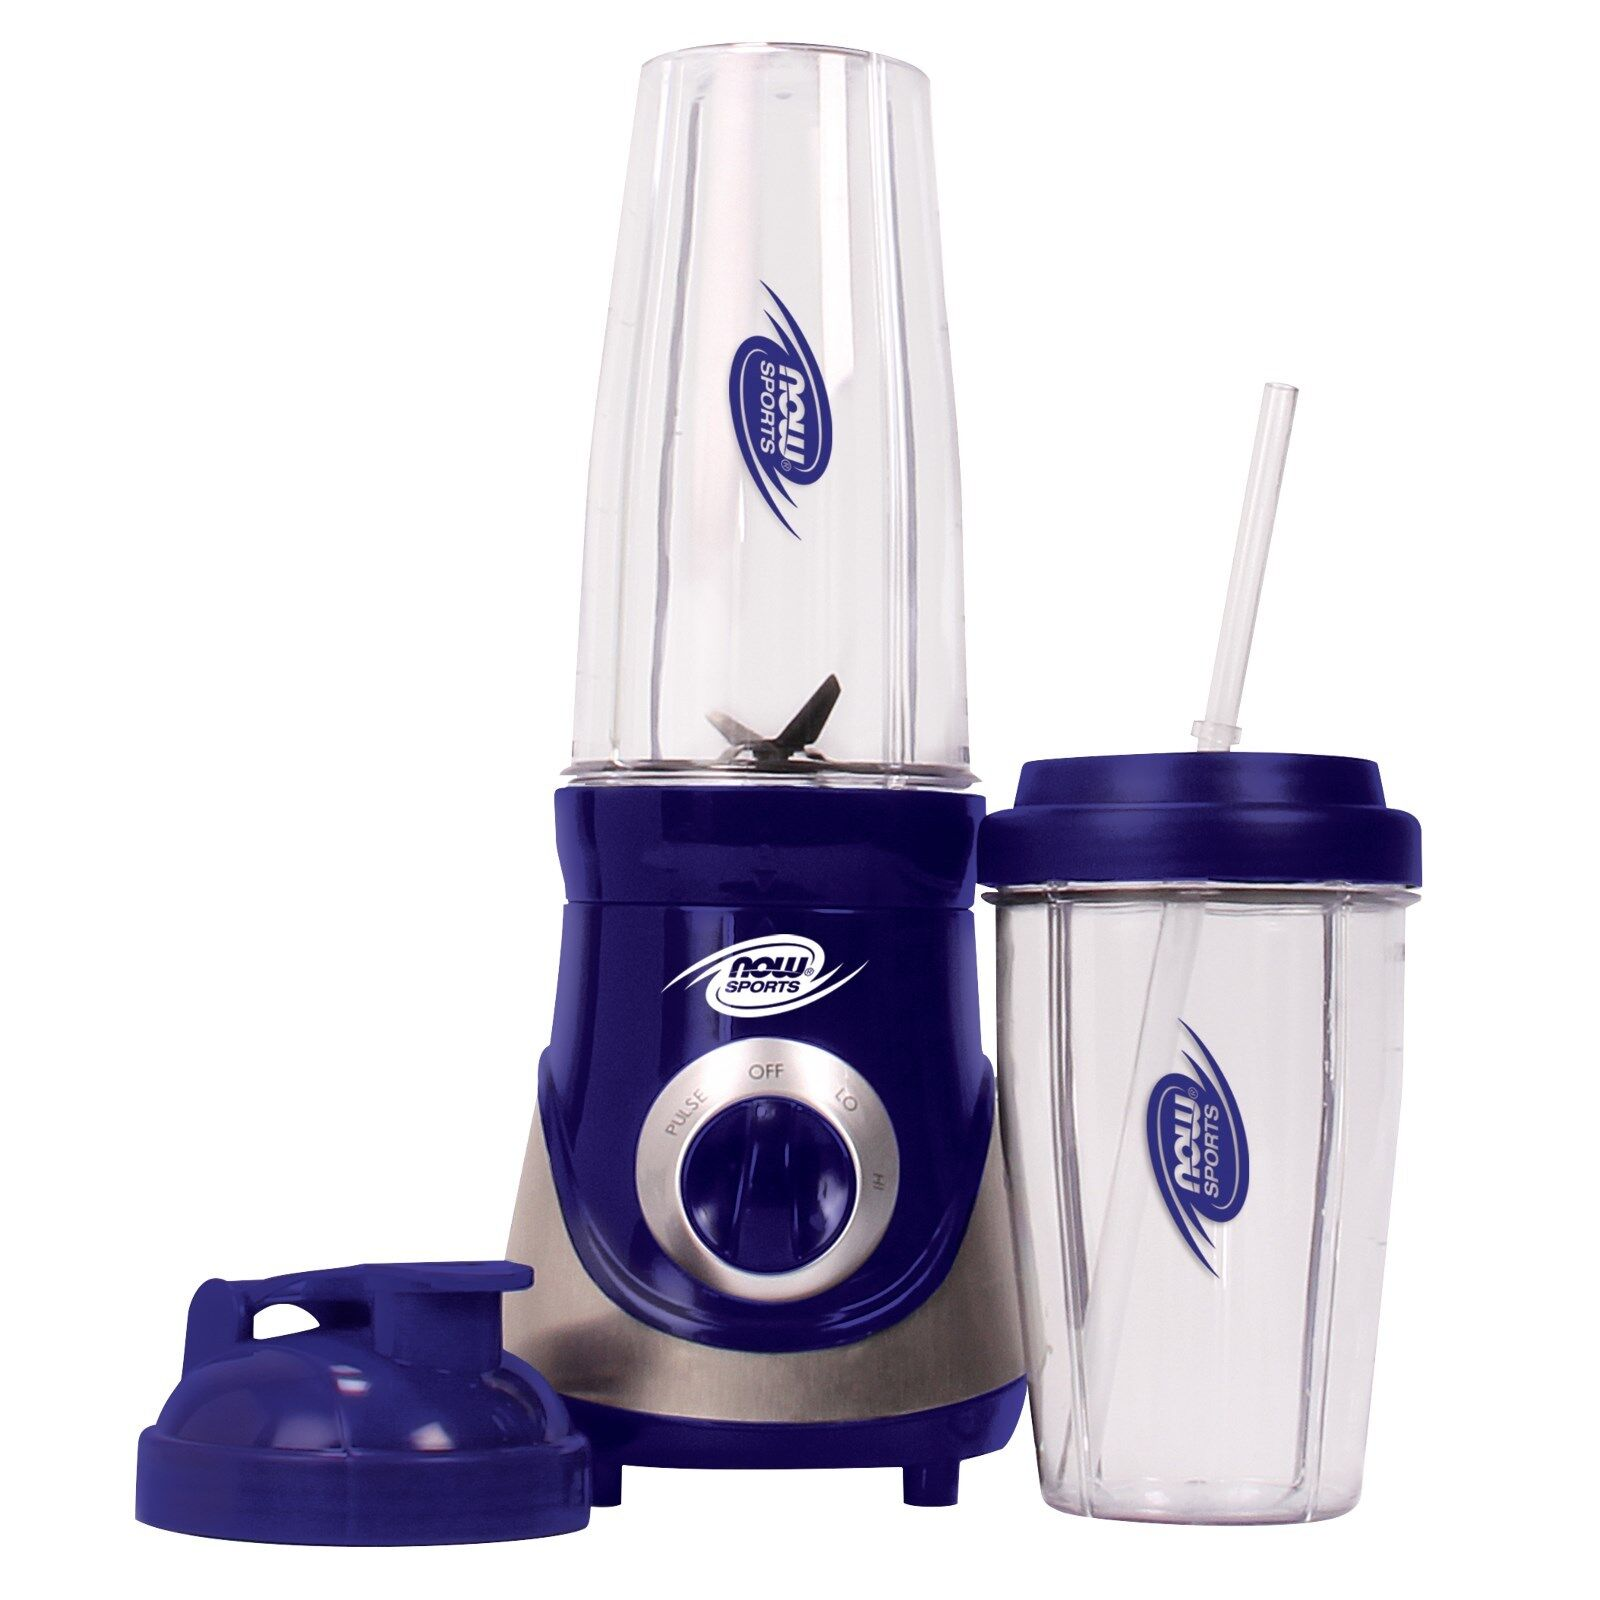 NOW Foods 300 Watt Personal Blender